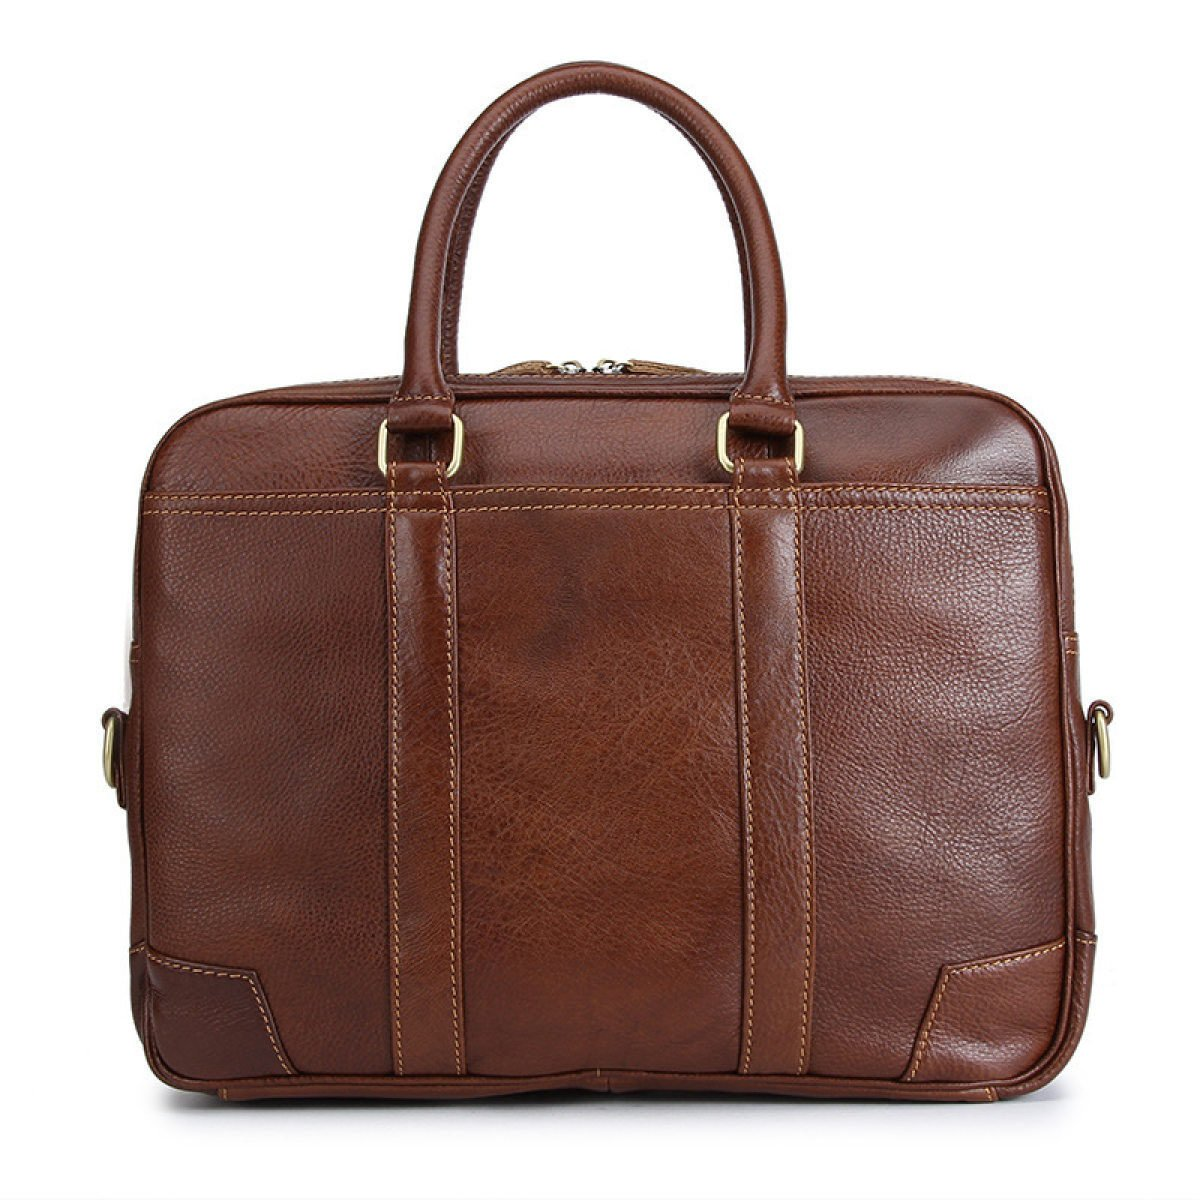 Porte-documents En Cuir Véritable Pour Hommes Sac à Bandoulière Sac Pour Ordinateur Portable 14 Pouces Sac à Main Carré (marron) DarkBrown-OneSize XMOE